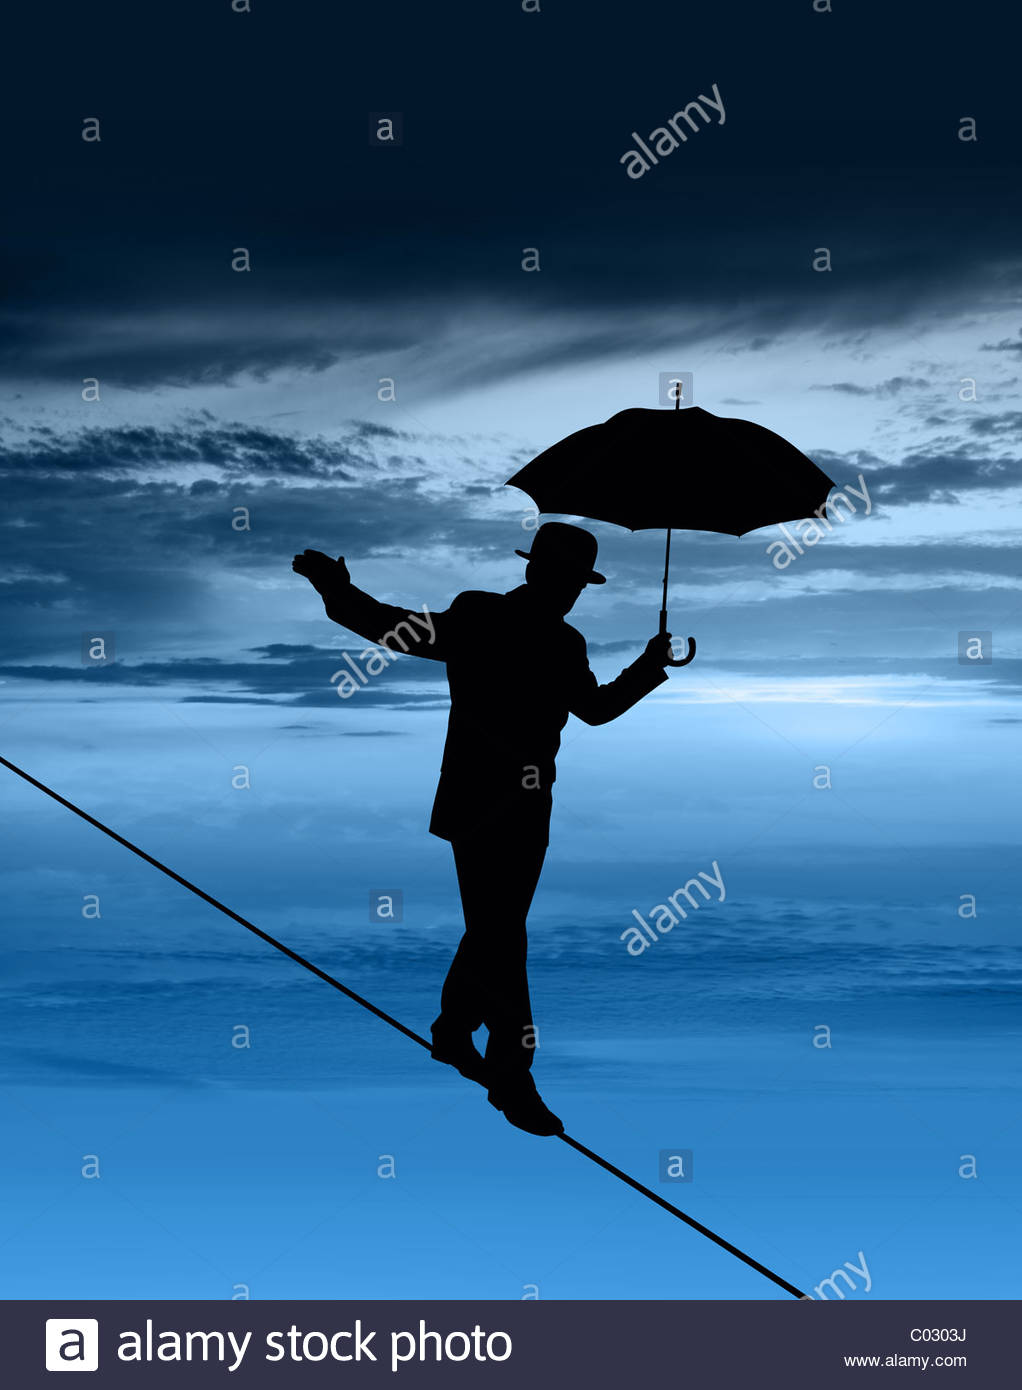 Silhouette of businessman on tightrope Photo Stock